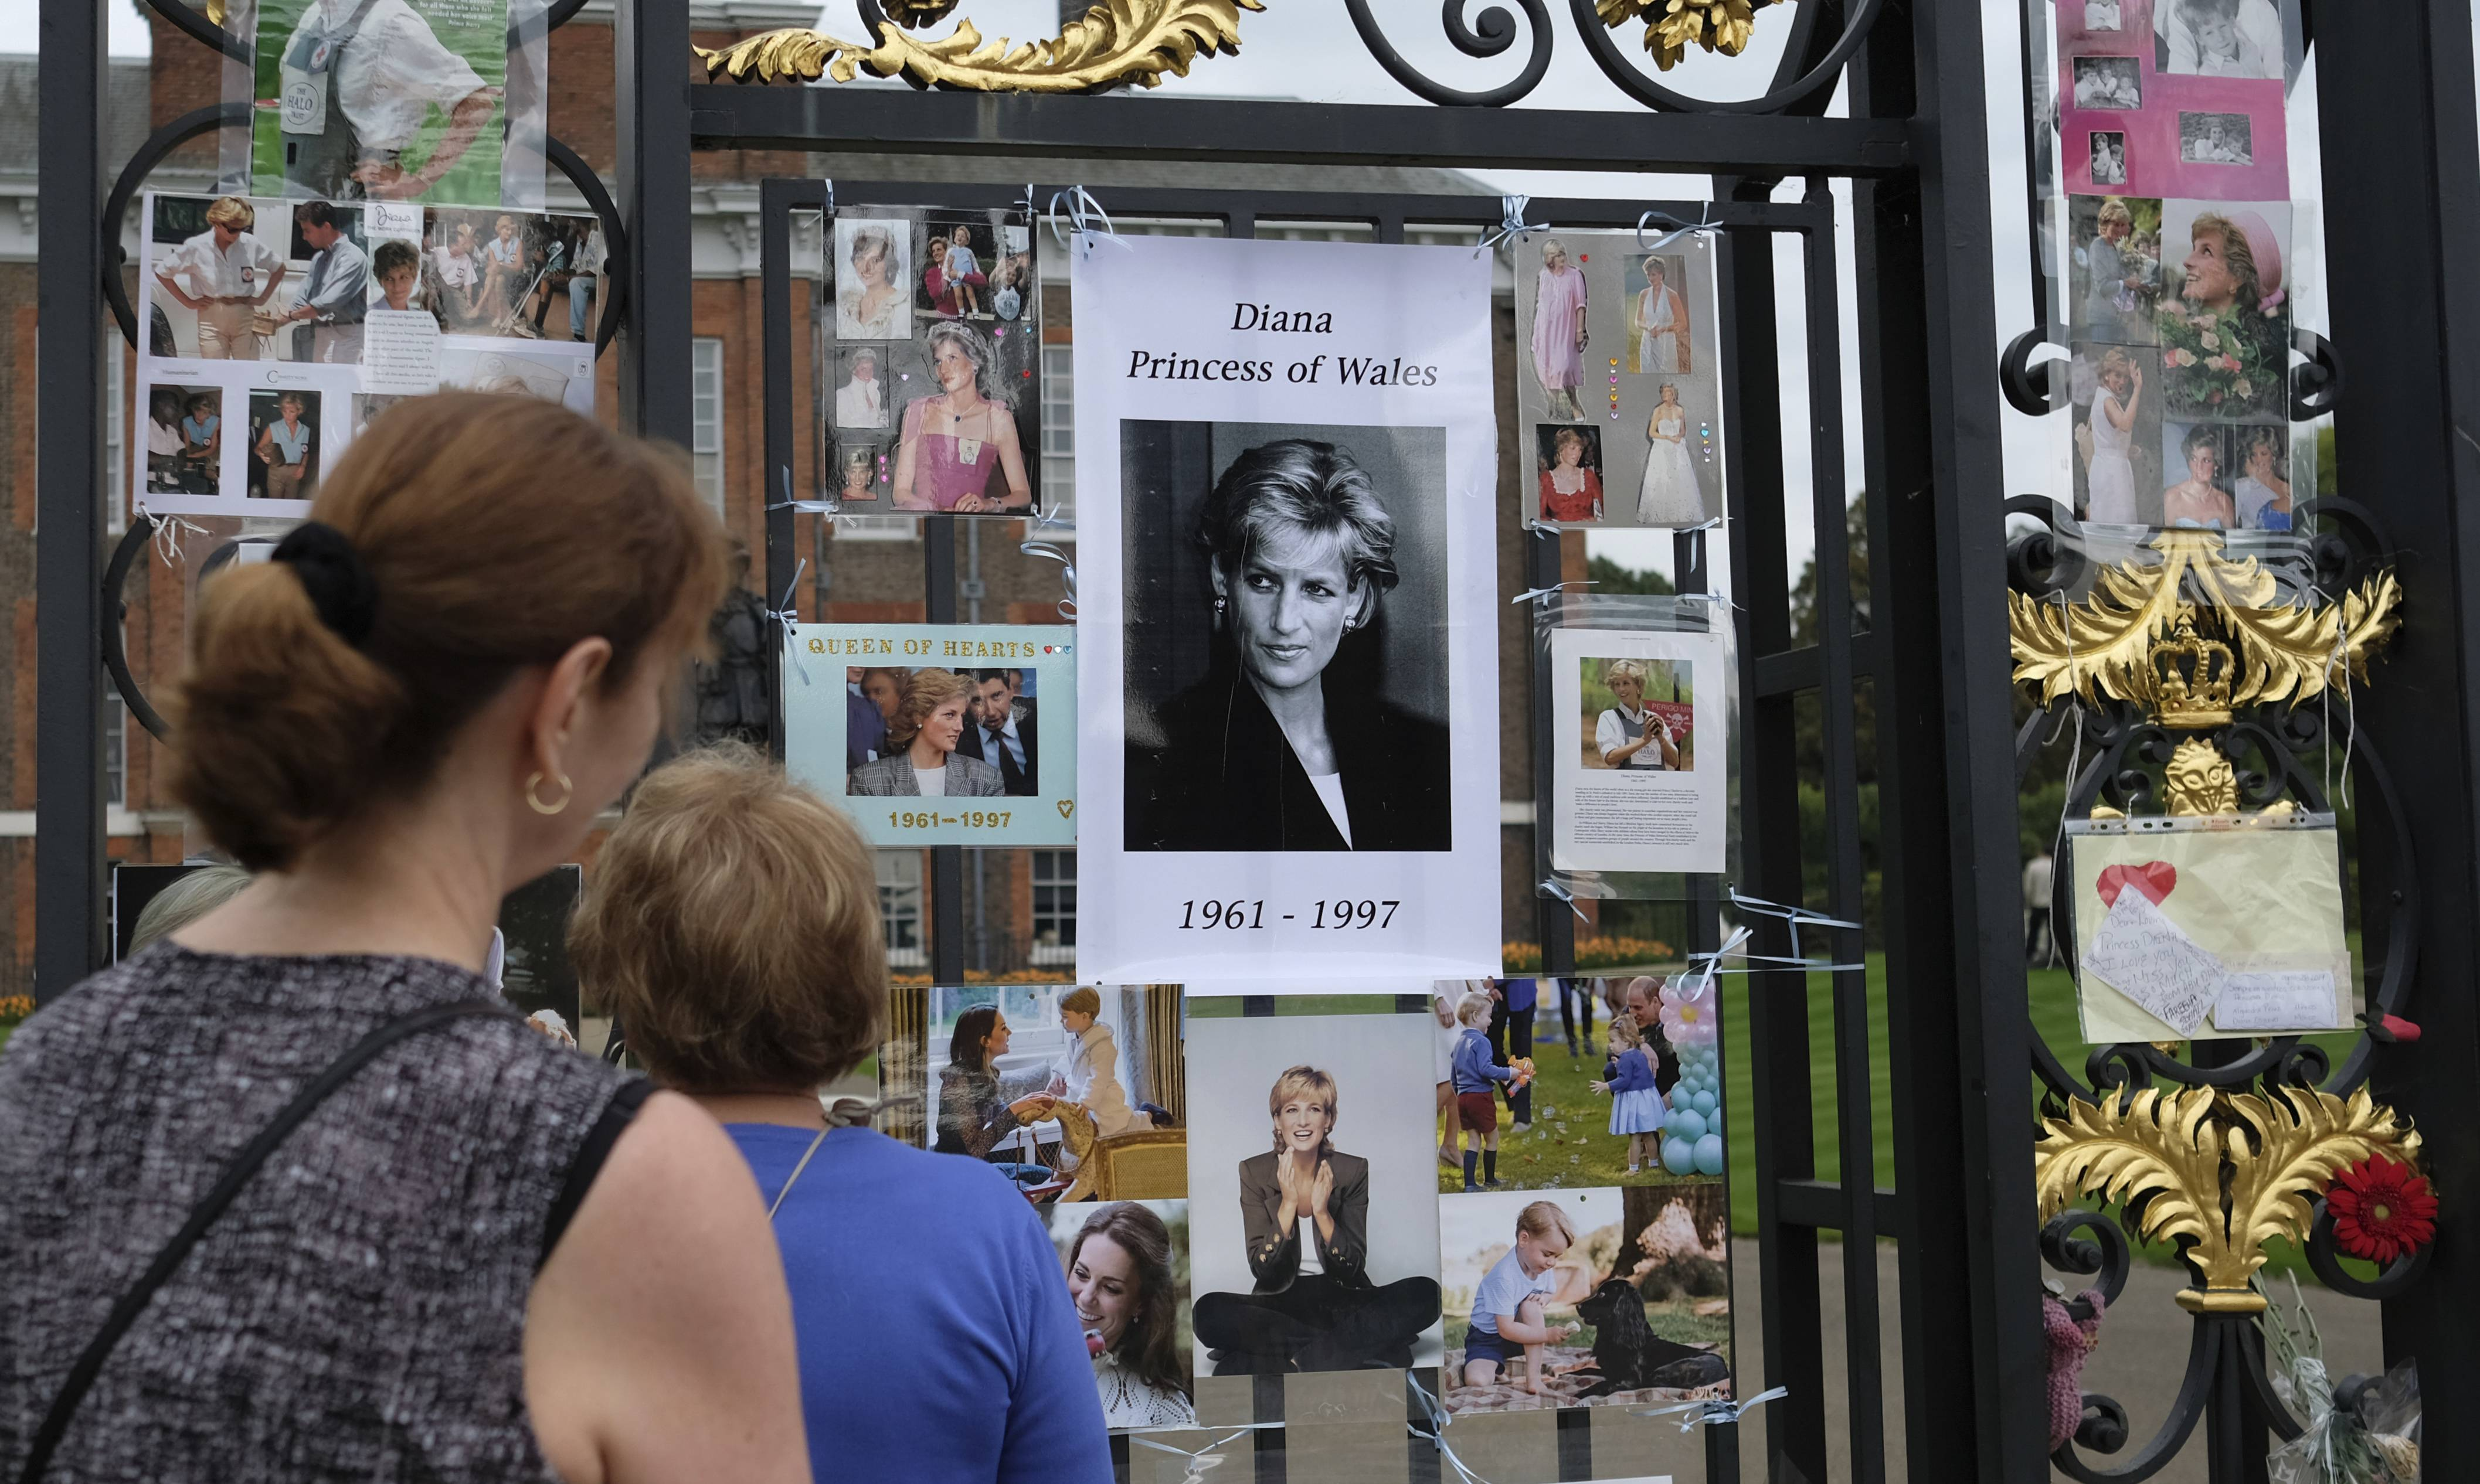 Tourists look at tributes and memorabilia for the late Diana, Princess of Wales outside Kensington Palace in London, Tuesday, Aug. 29, 2017. The tributes are placed on one of the ornamental gates at the palace ahead of the 20th anniversary of Princess Diana's death, in a car crash in Paris Aug. 31, 1997.